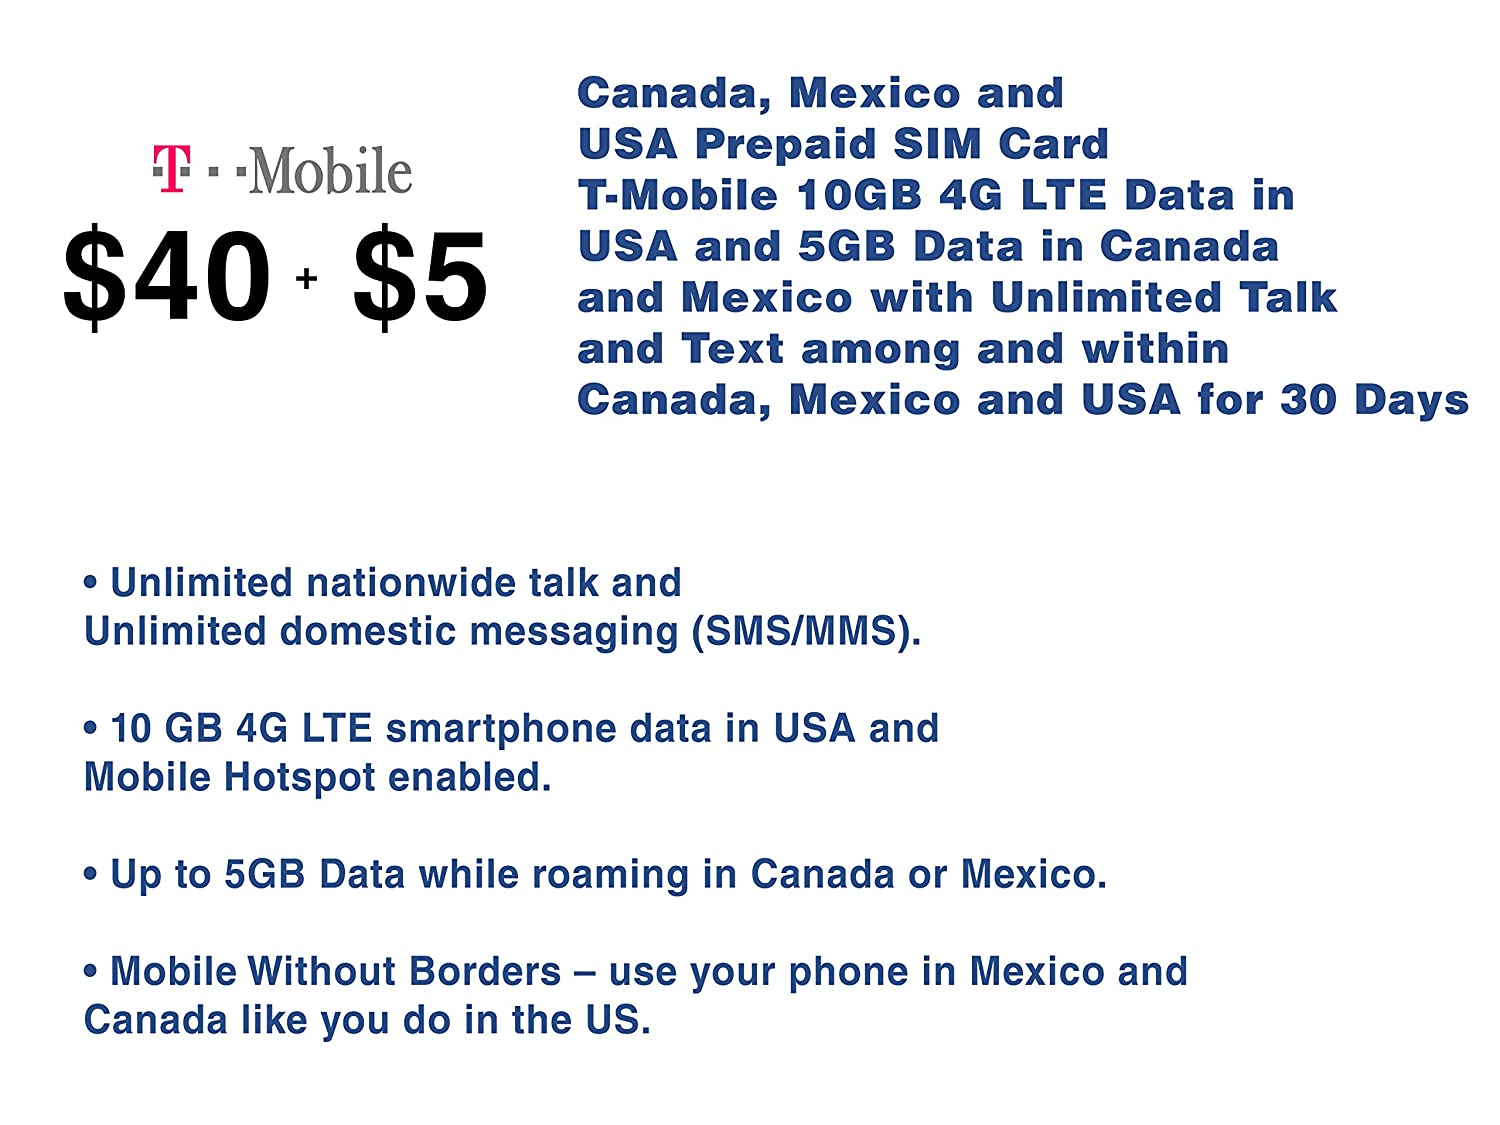 Madison : T mobile prepaid roaming in canada